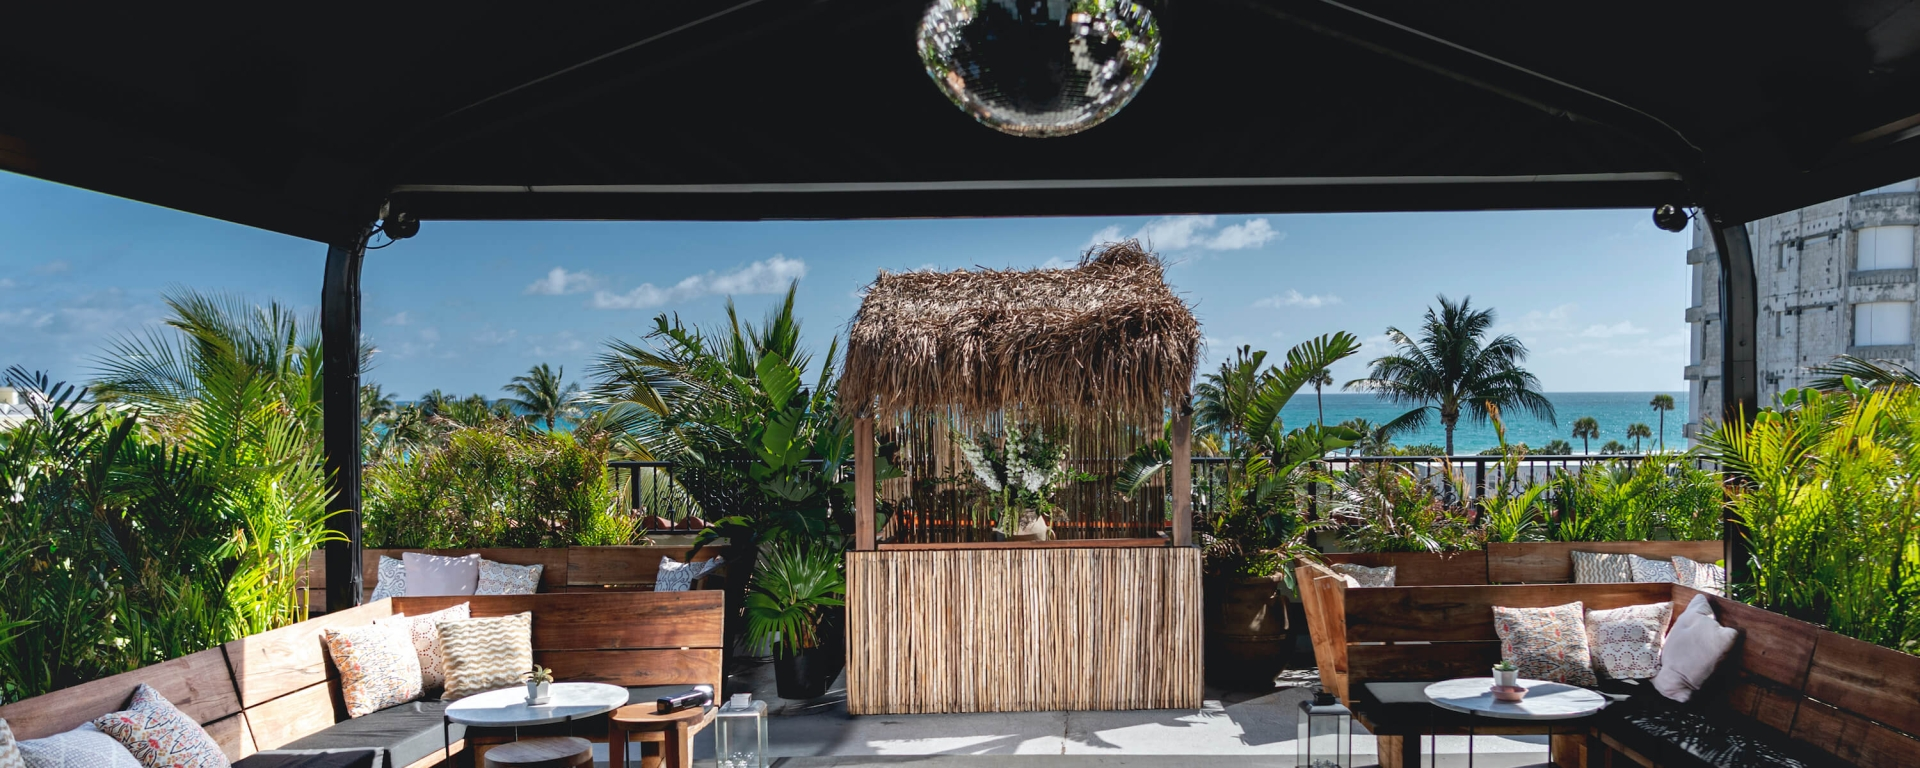 disco ball hangs above open air patio seating area with tiki bar